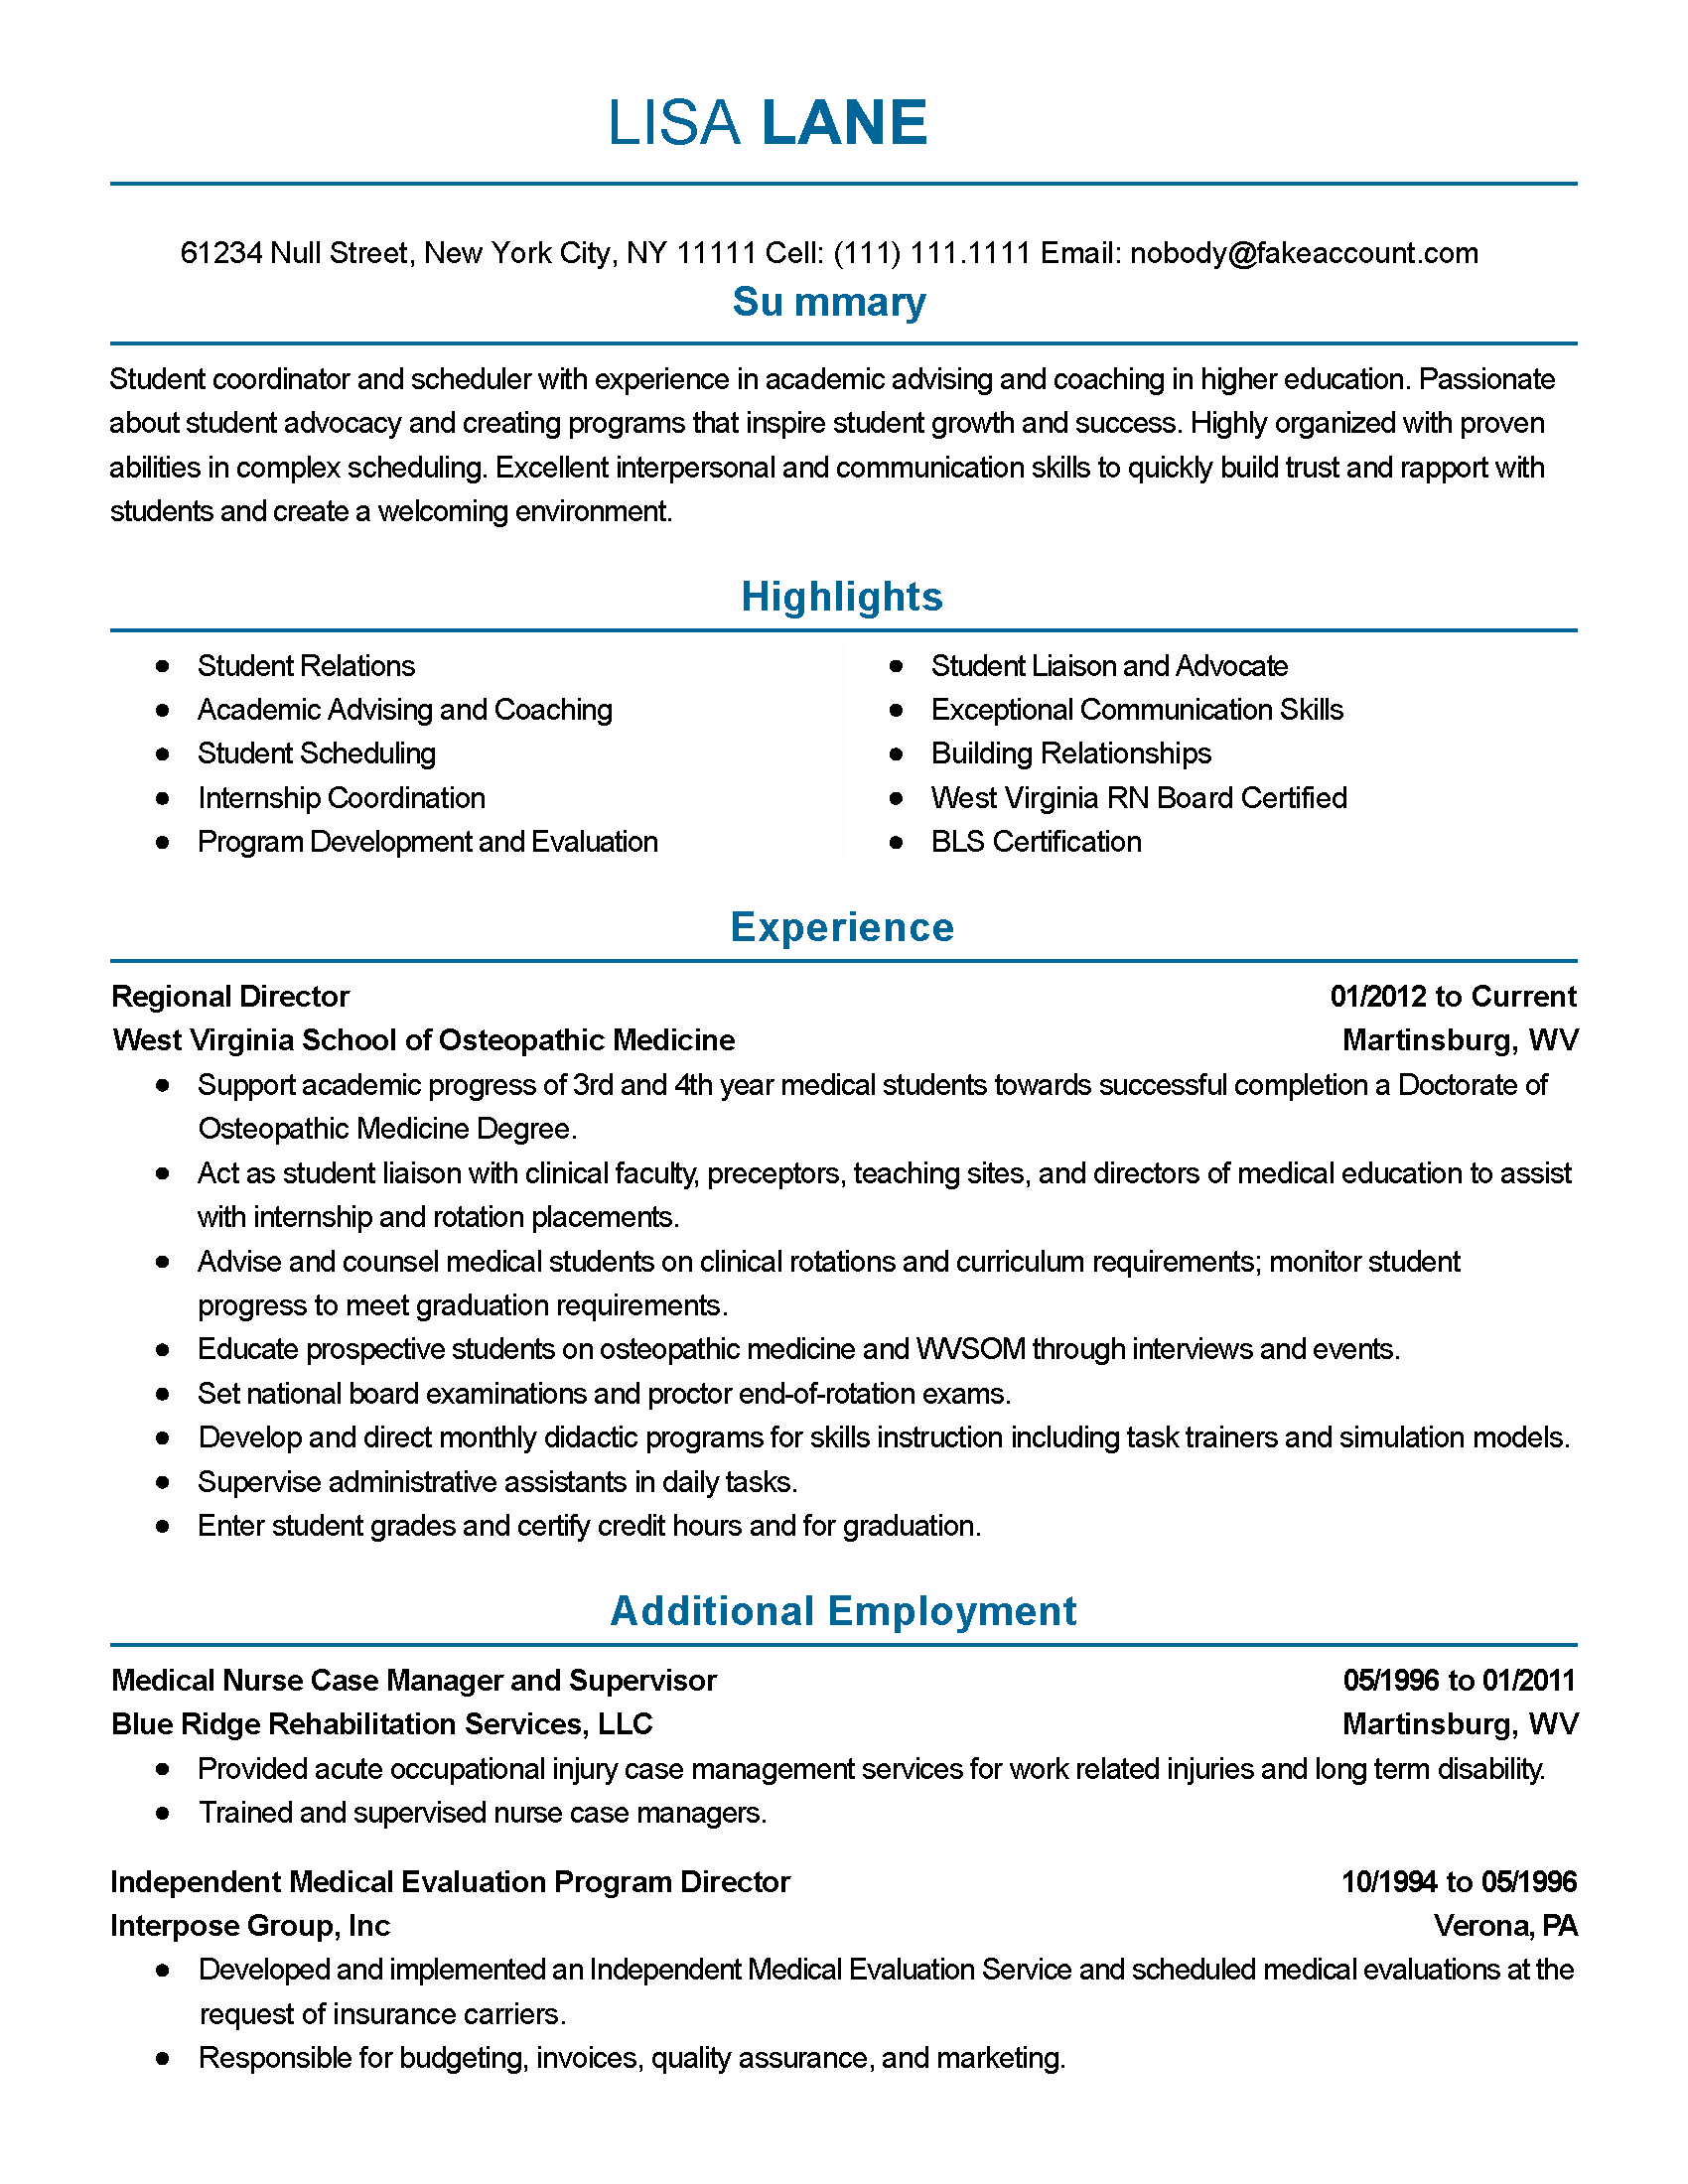 Parks And Recreation Resume Examples. Professional Student Coordinator  Templates To Showcase Your Talent .